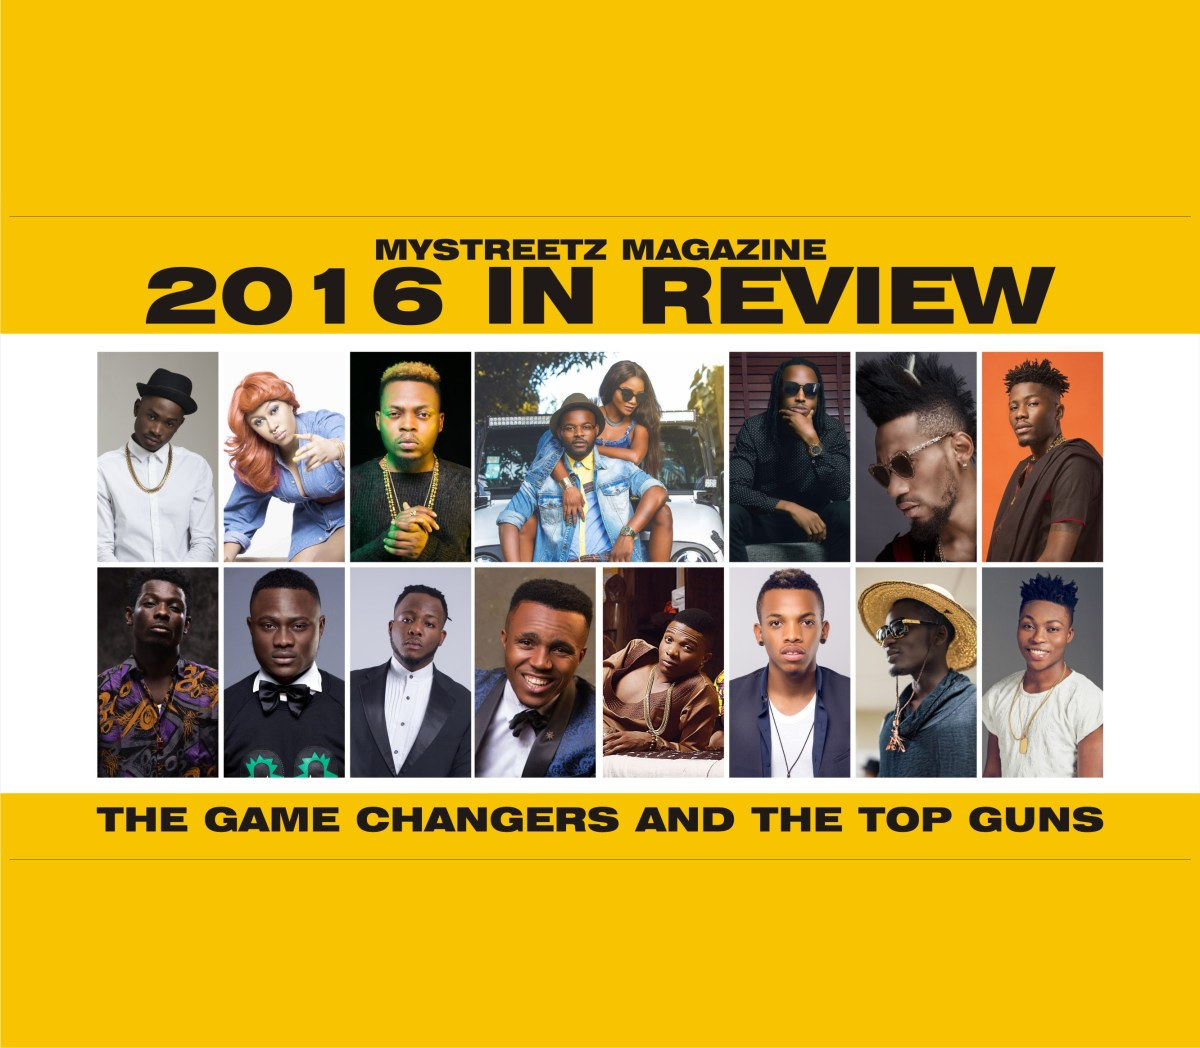 THE GAME CHANGERS AND THE TOP GUNS IN 2016 | MyStreetz Magazine